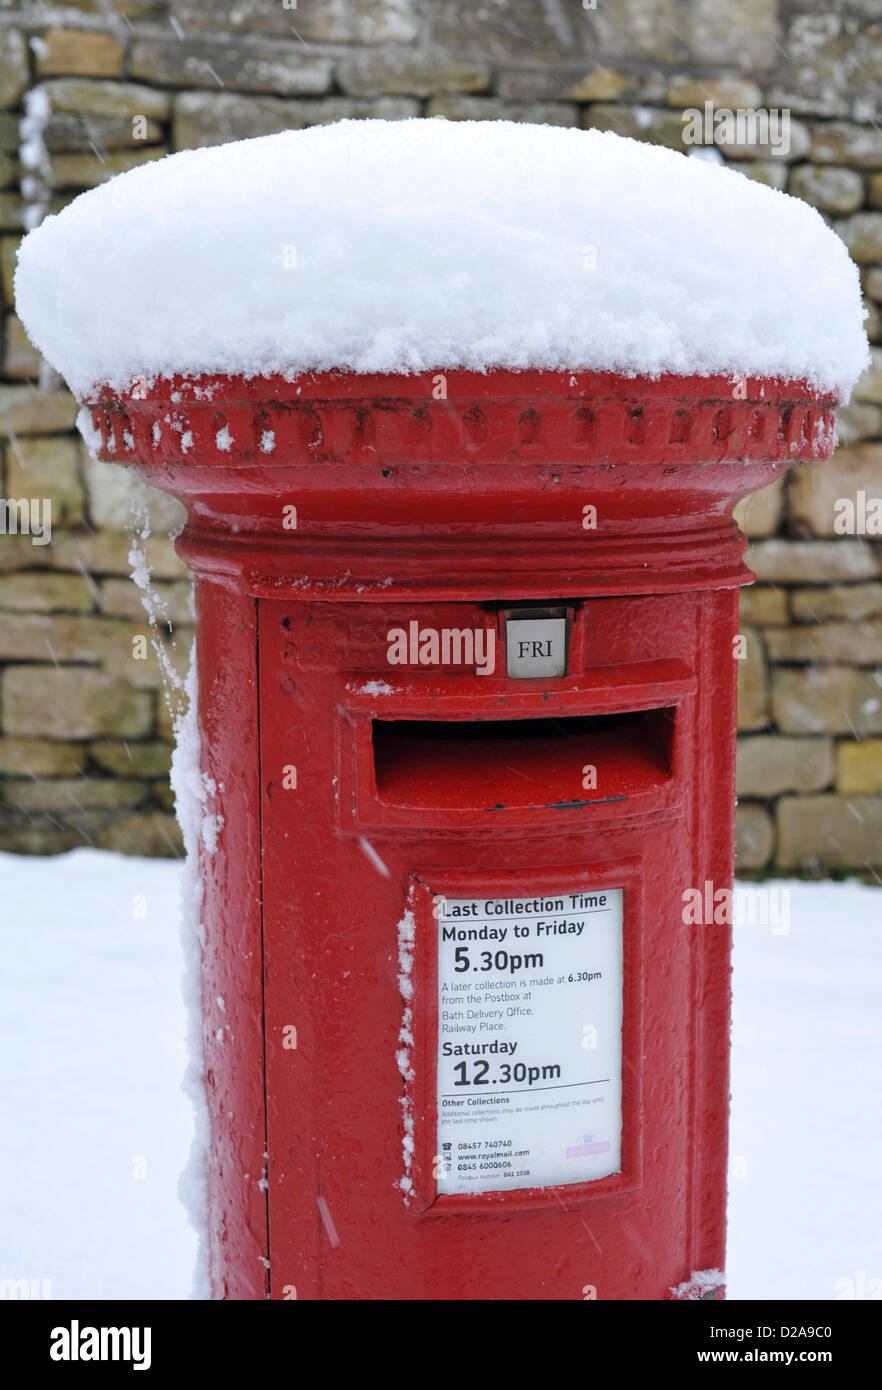 Bathford, UK. 18th January 2013. Britain awakes to a blanket of snow.  Postbox in Bathford, Friday January 18th - Stock Image